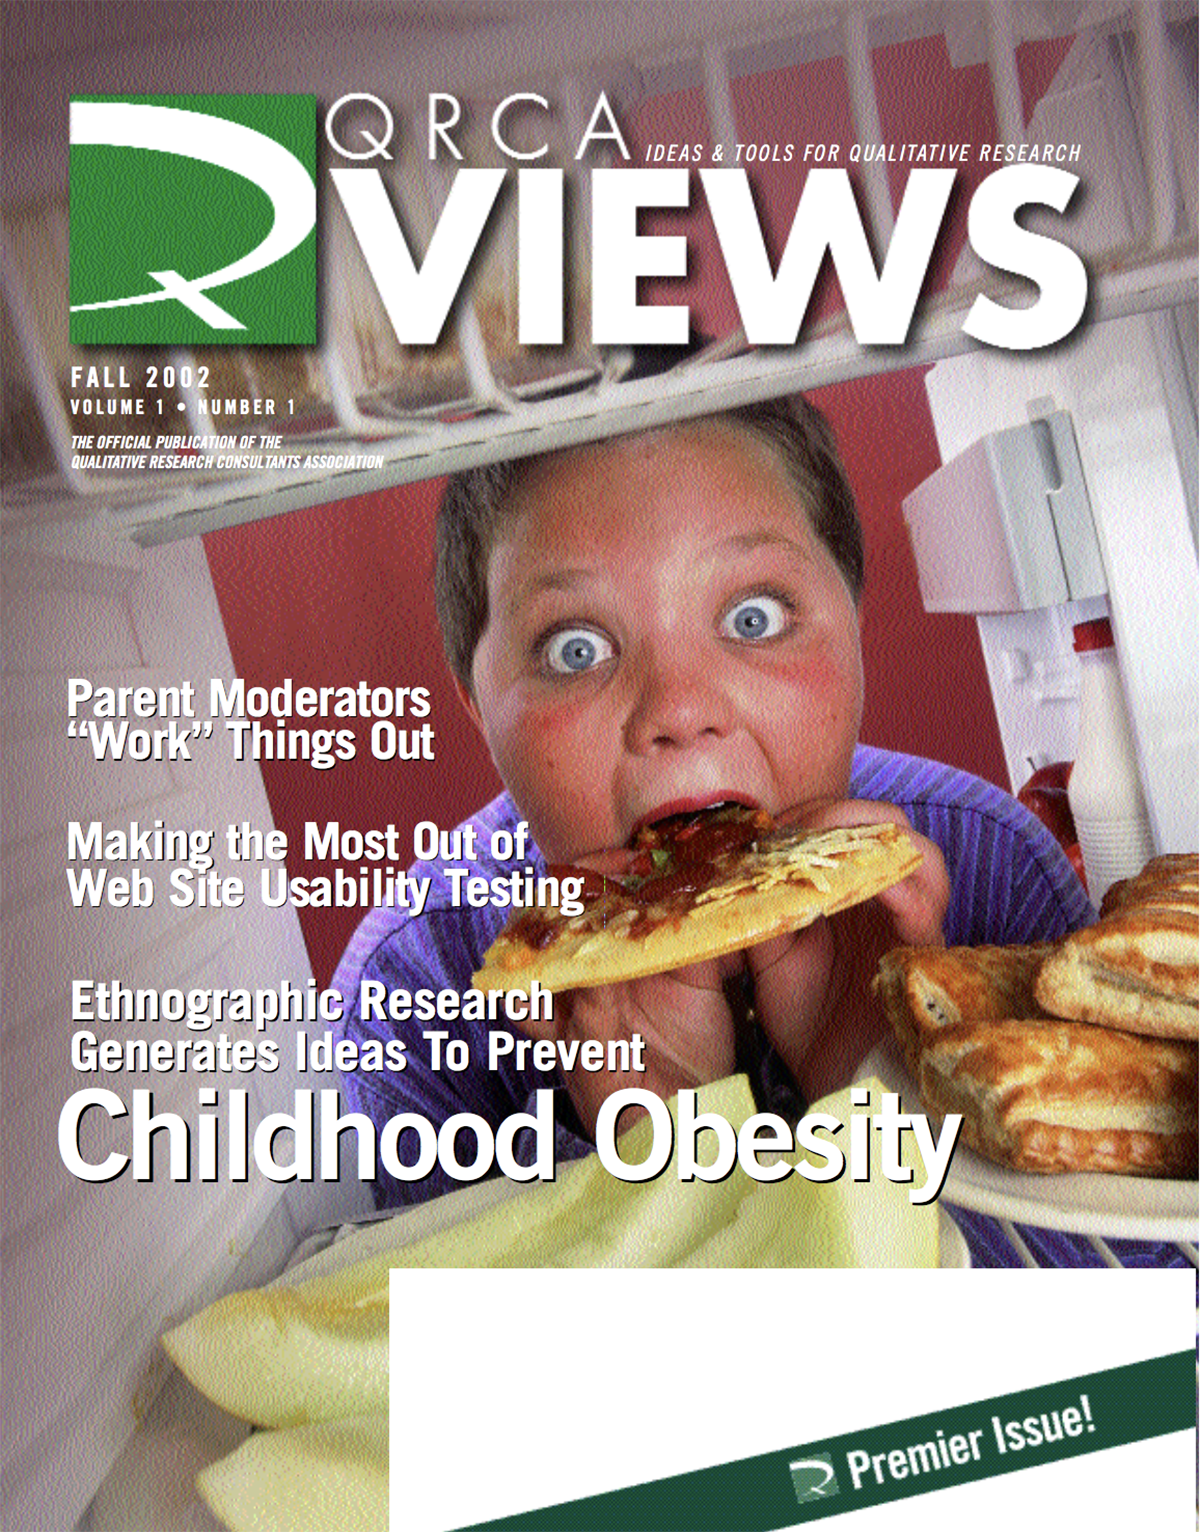 inaugural QRCA Views issue